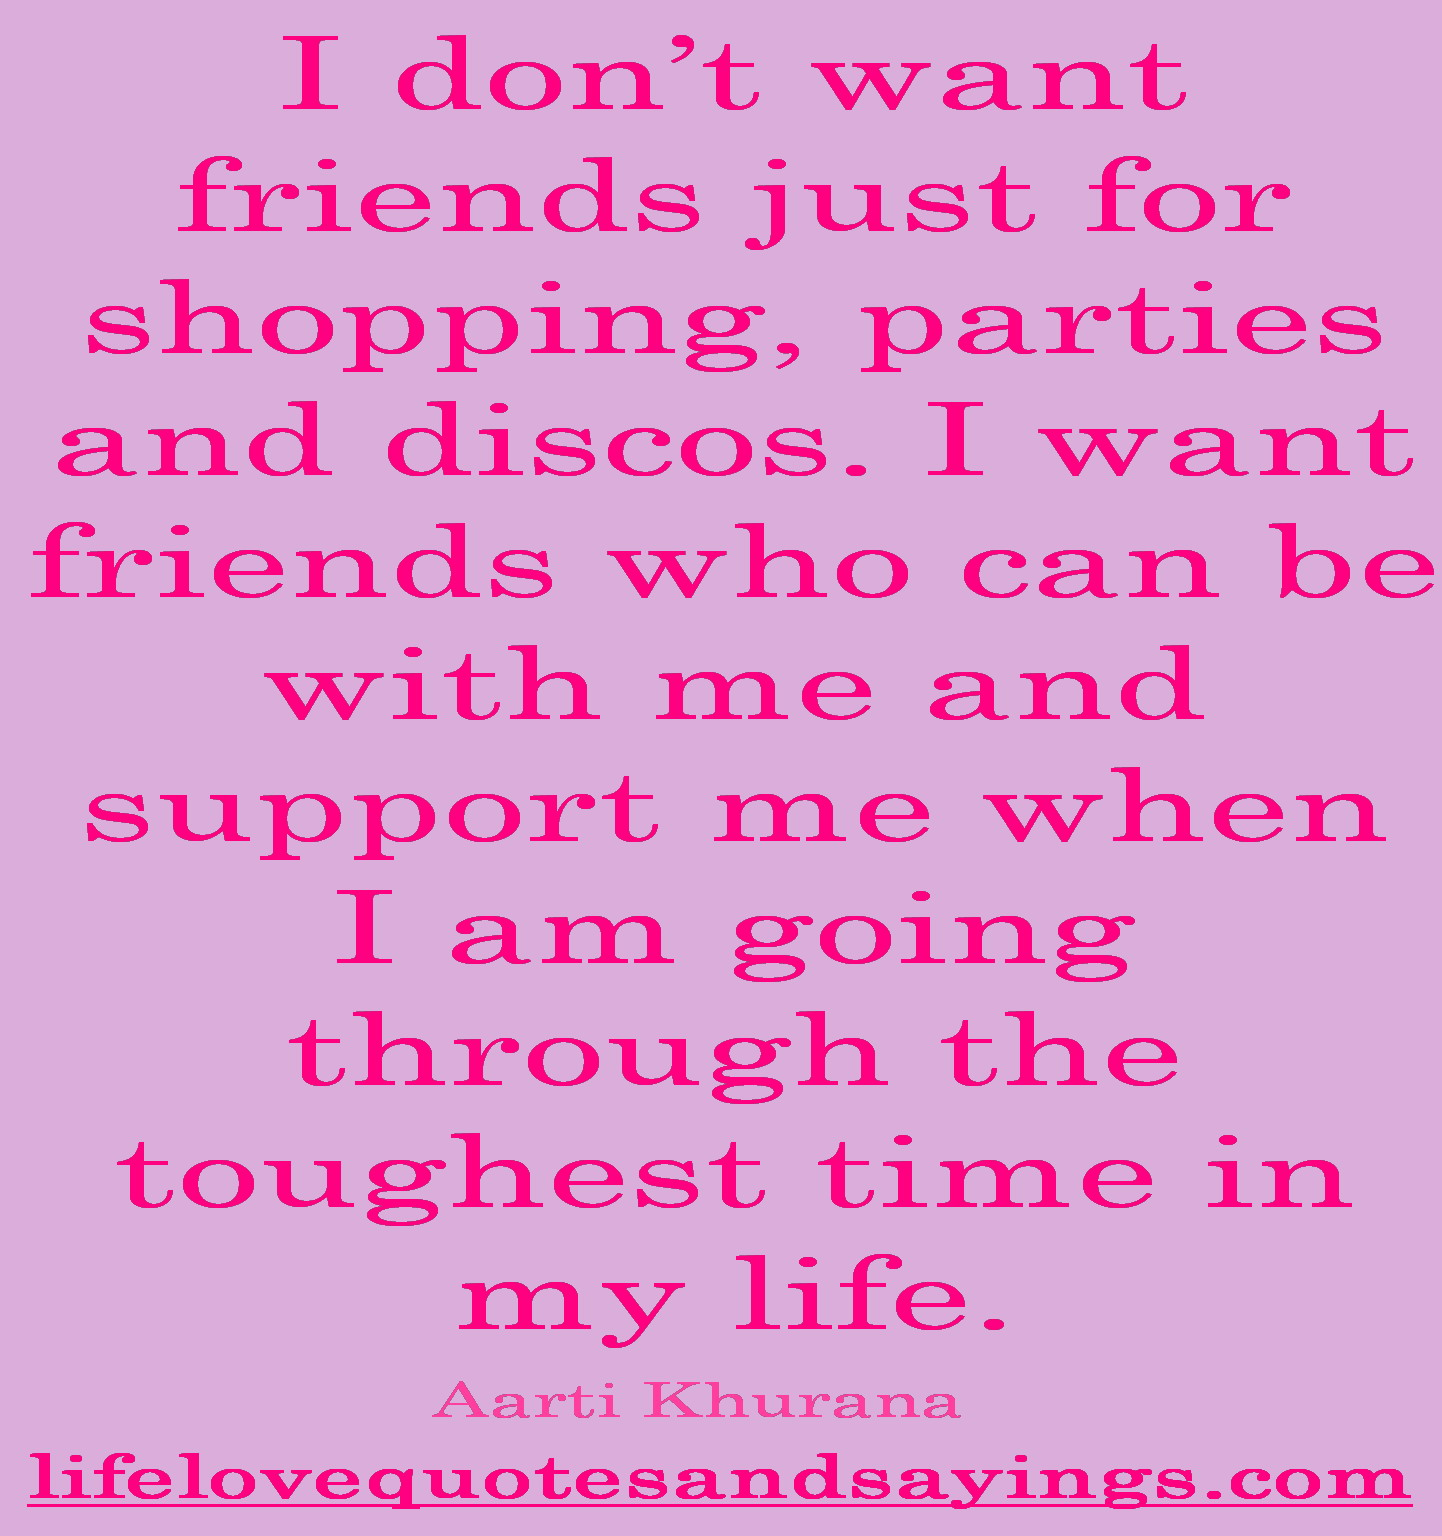 Friends Supporting Friends Quotes. QuotesGram